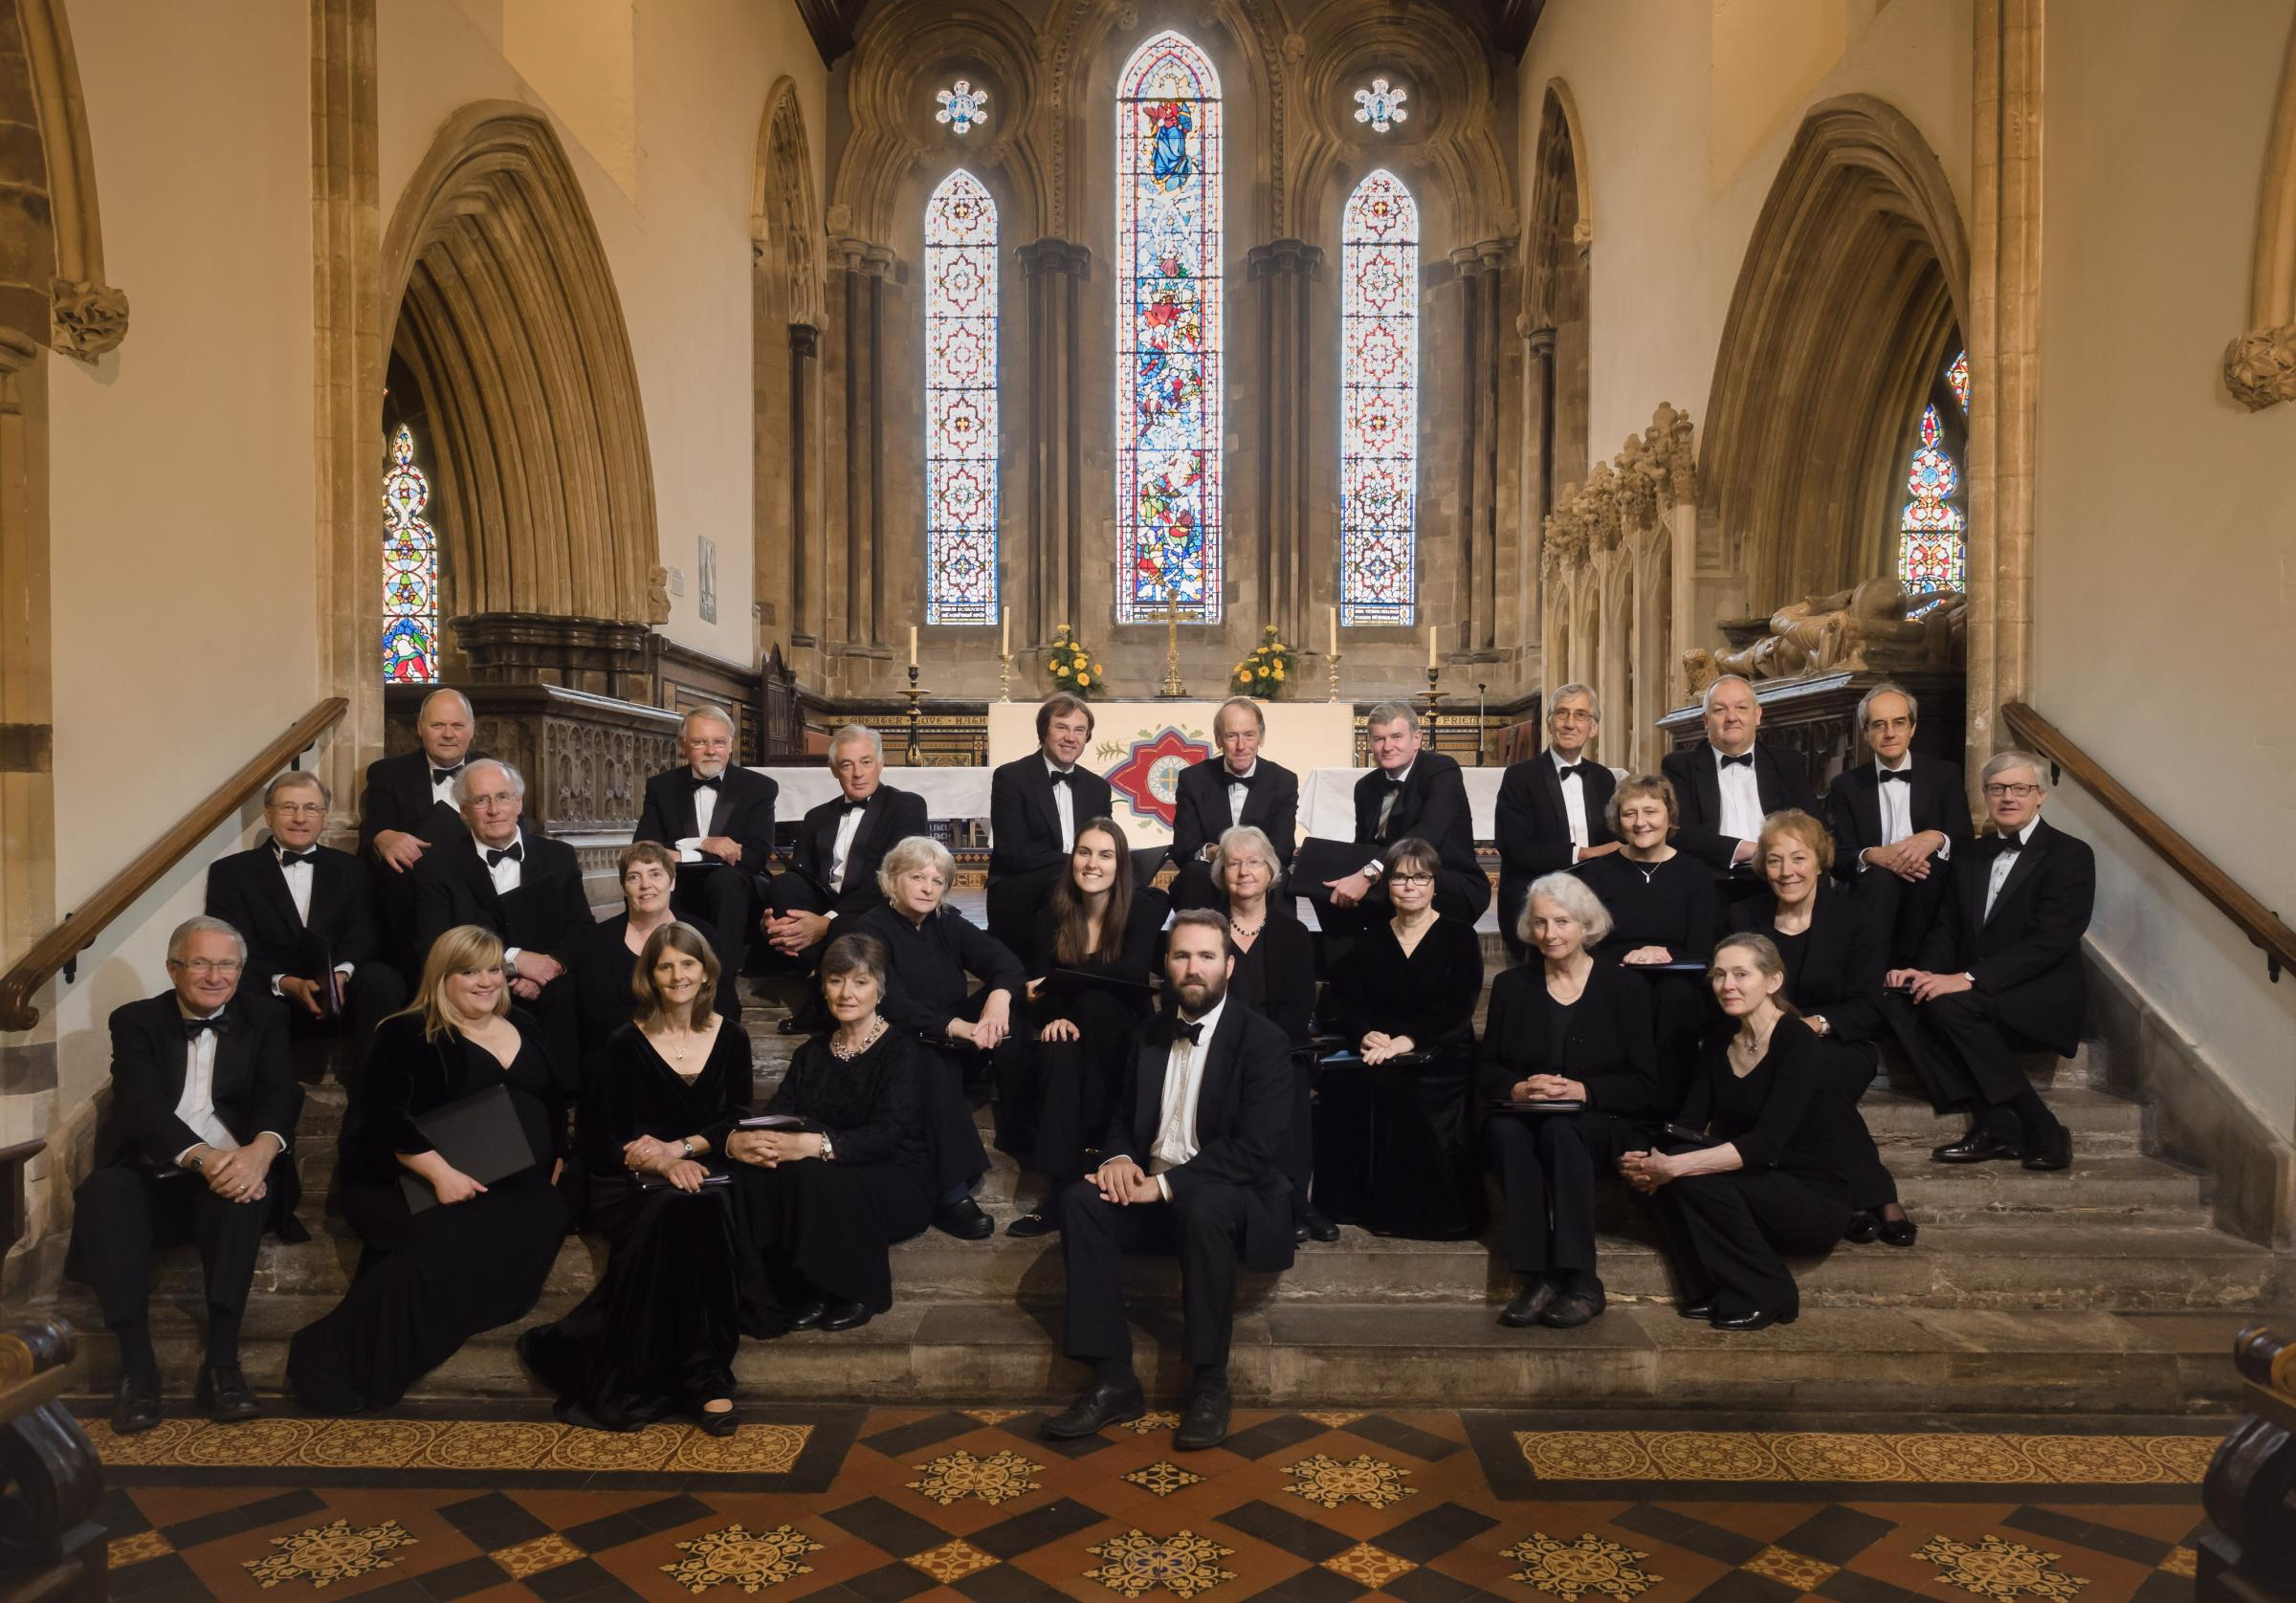 Bournemouth Sinfonietta Choir - Spem in Alium - Choral works in 40 parts